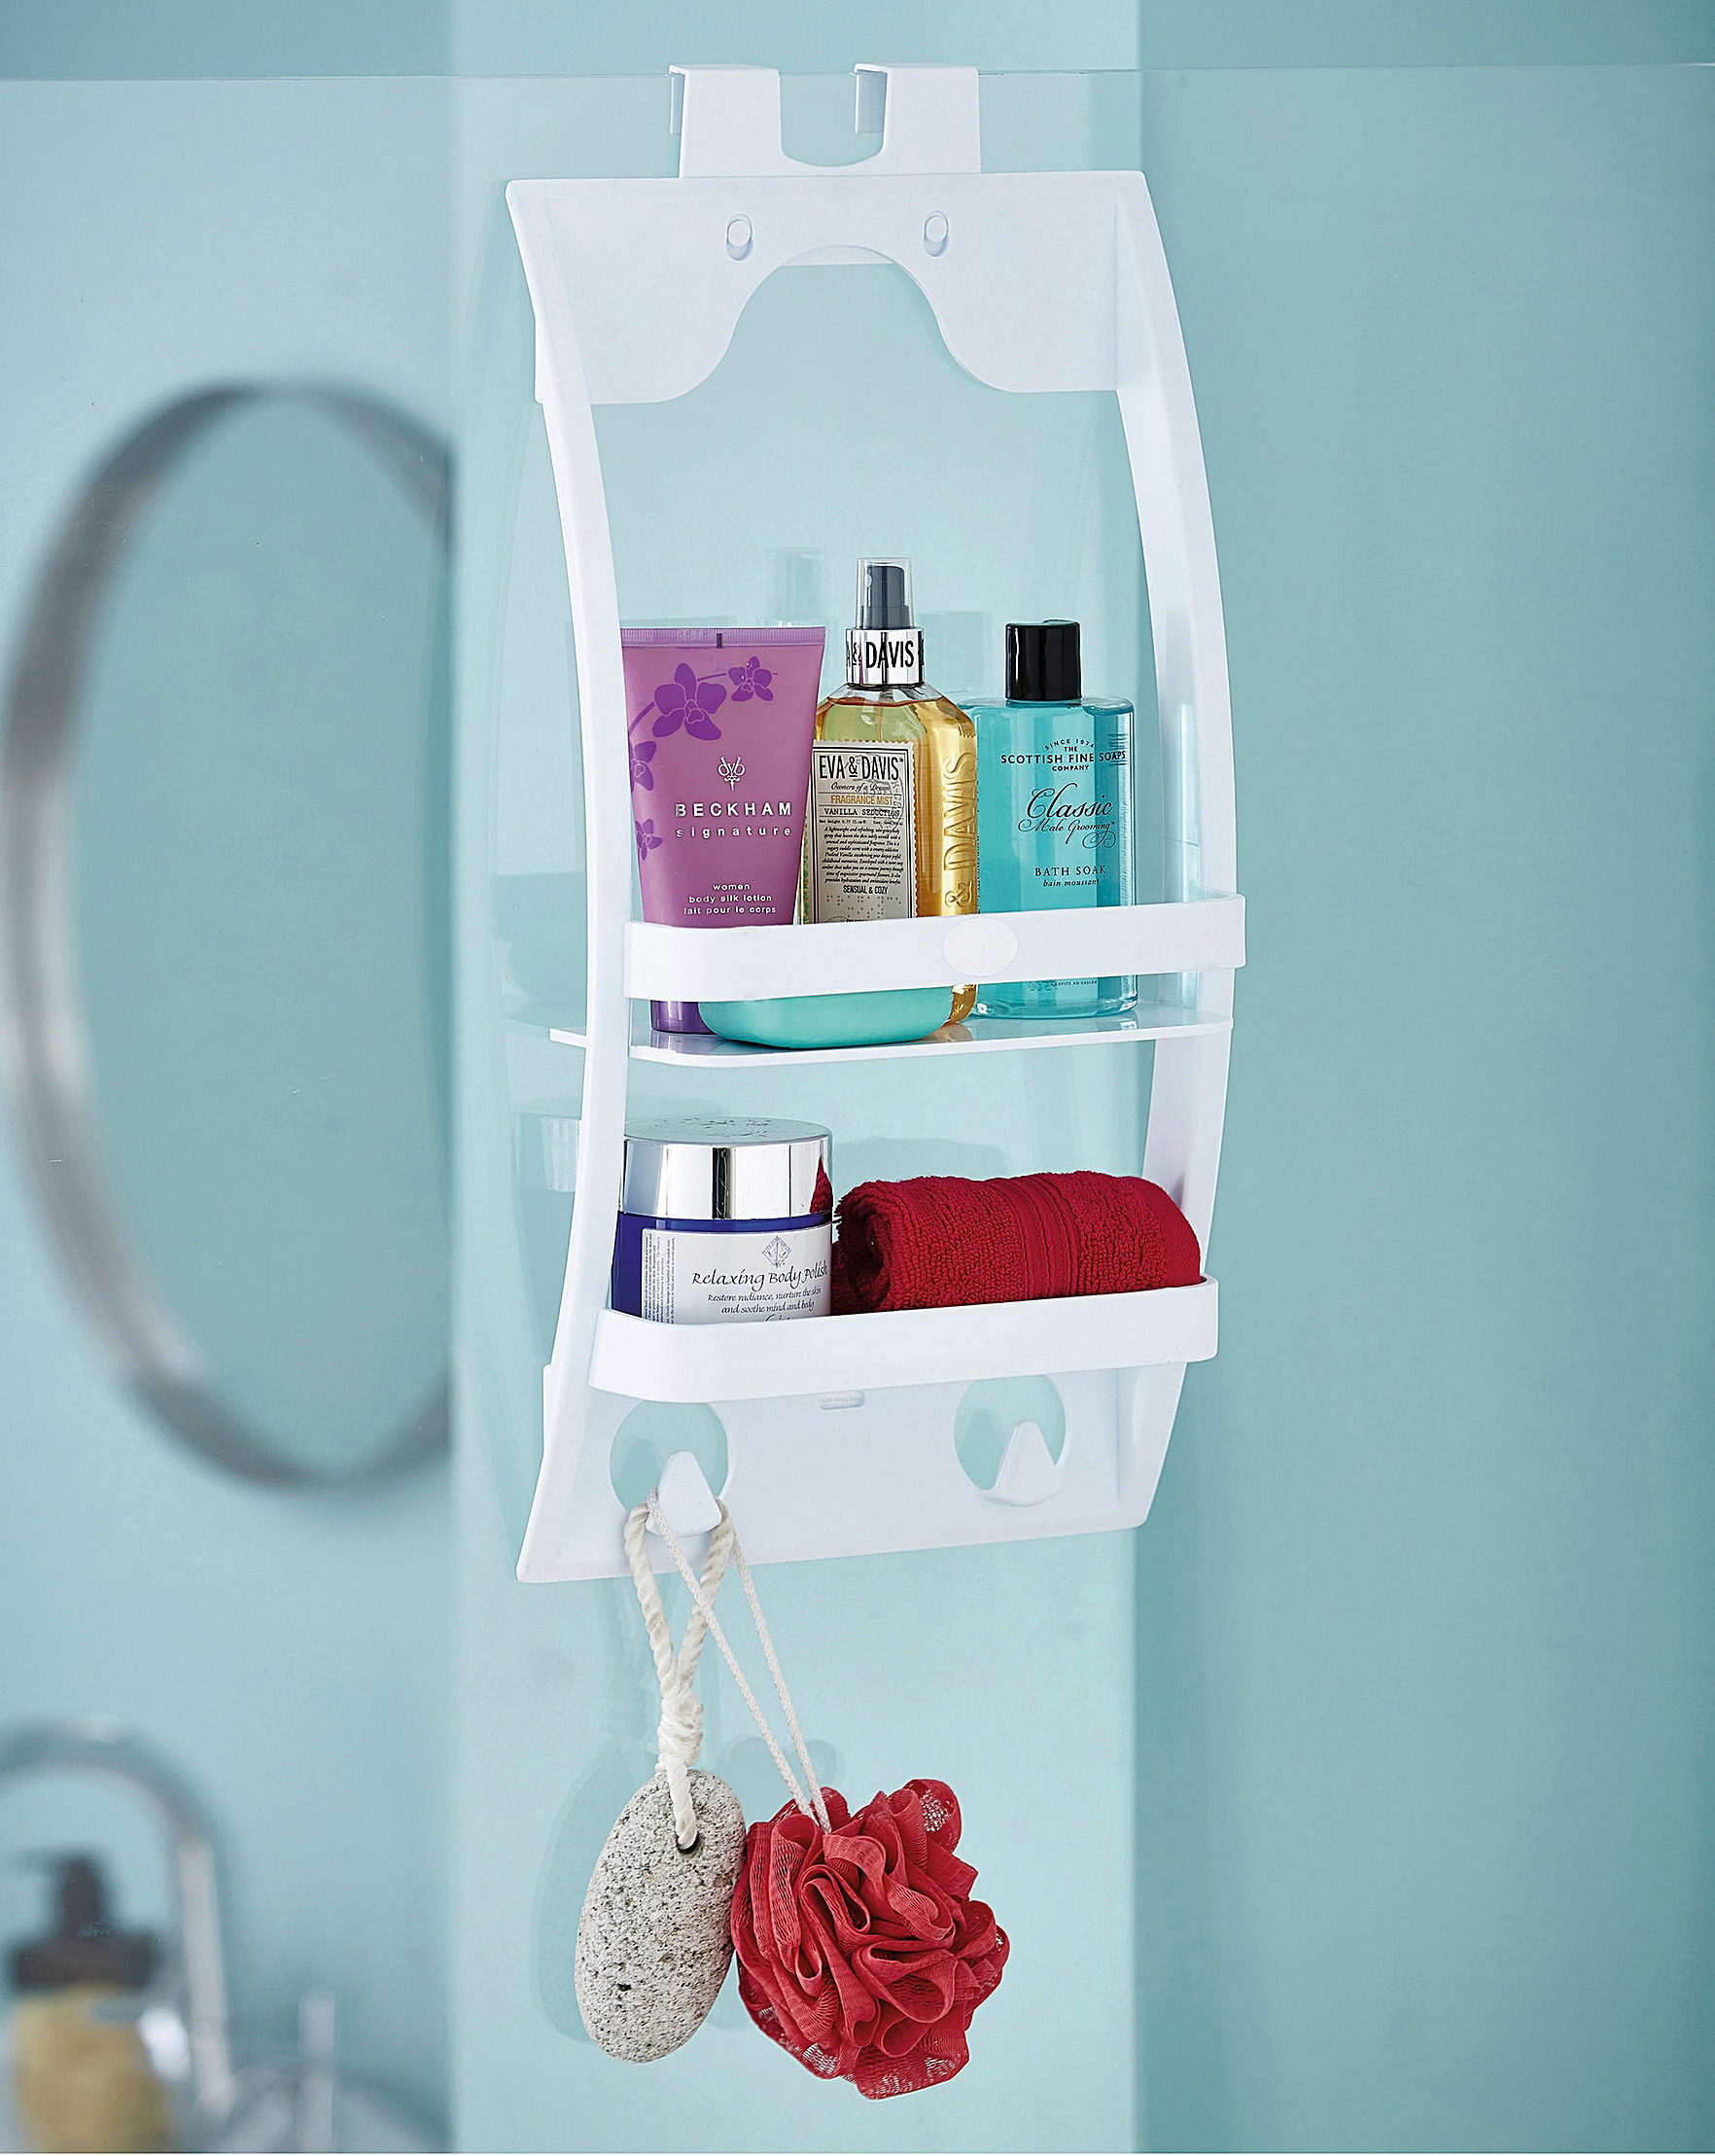 Shower Caddy | House of Bath